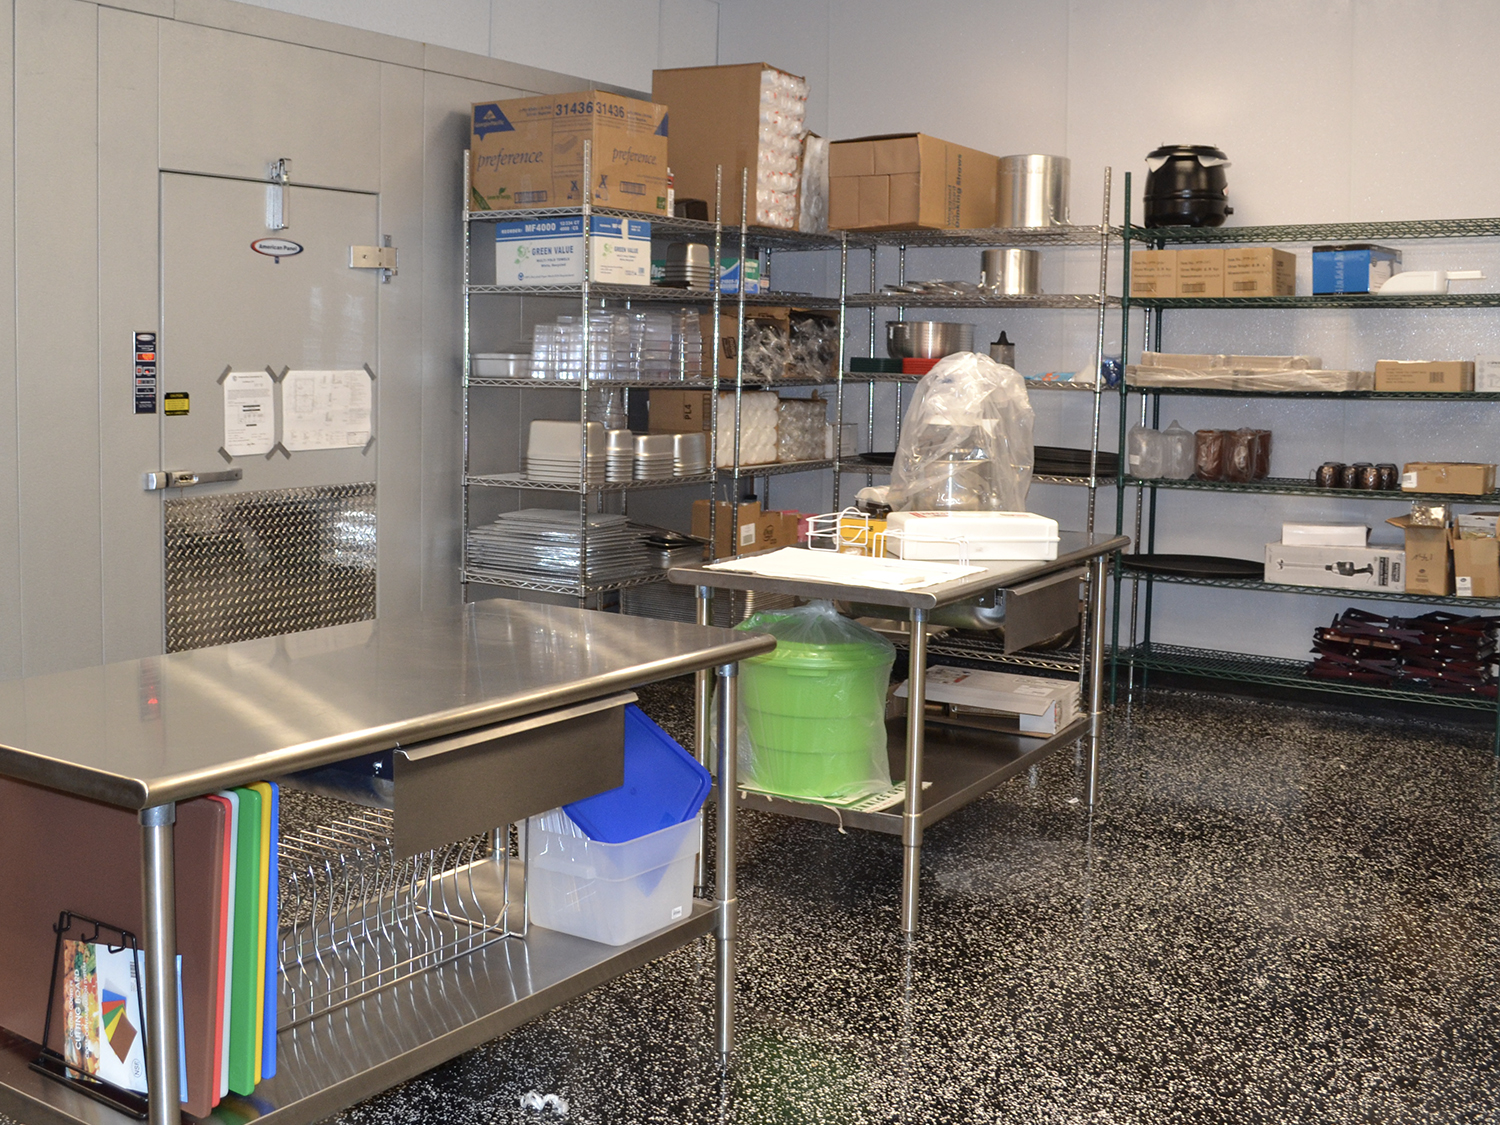 walkin refrigeration shelving stainless steel work table